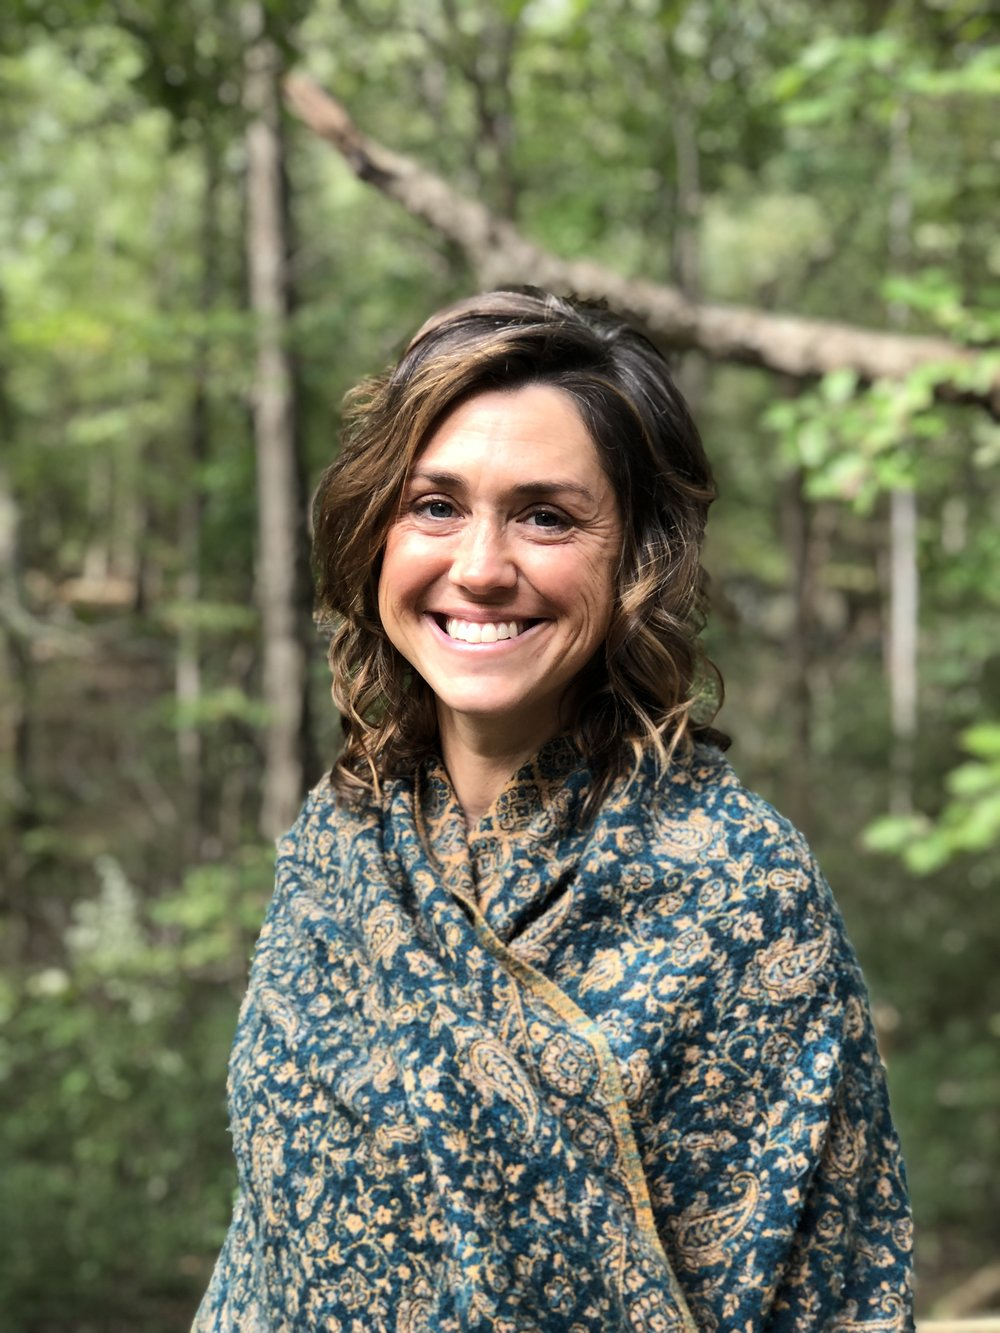 Meg Toben   Megan and her husband, Tim, co-created the Eco-Institute at Pickards Mountain as a sanctuary for nature connection, renewal, and healing the human-Earth relationship. Meg has twenty years of experience as an environmental educator, and ten as an executive director, during which time she has learned useful techniques for cultivating balance while keeping a holistic level of awareness. Meg knows and loves the land here deeply, having raised her family on it for the past twelve years. In 2015, Meg was honored with the Piedmont Environmental Leadership Award. Her love for art, ritual, Earth, and humanity inspire her to offer healing space of deep renewal to all who are working to heal our world.